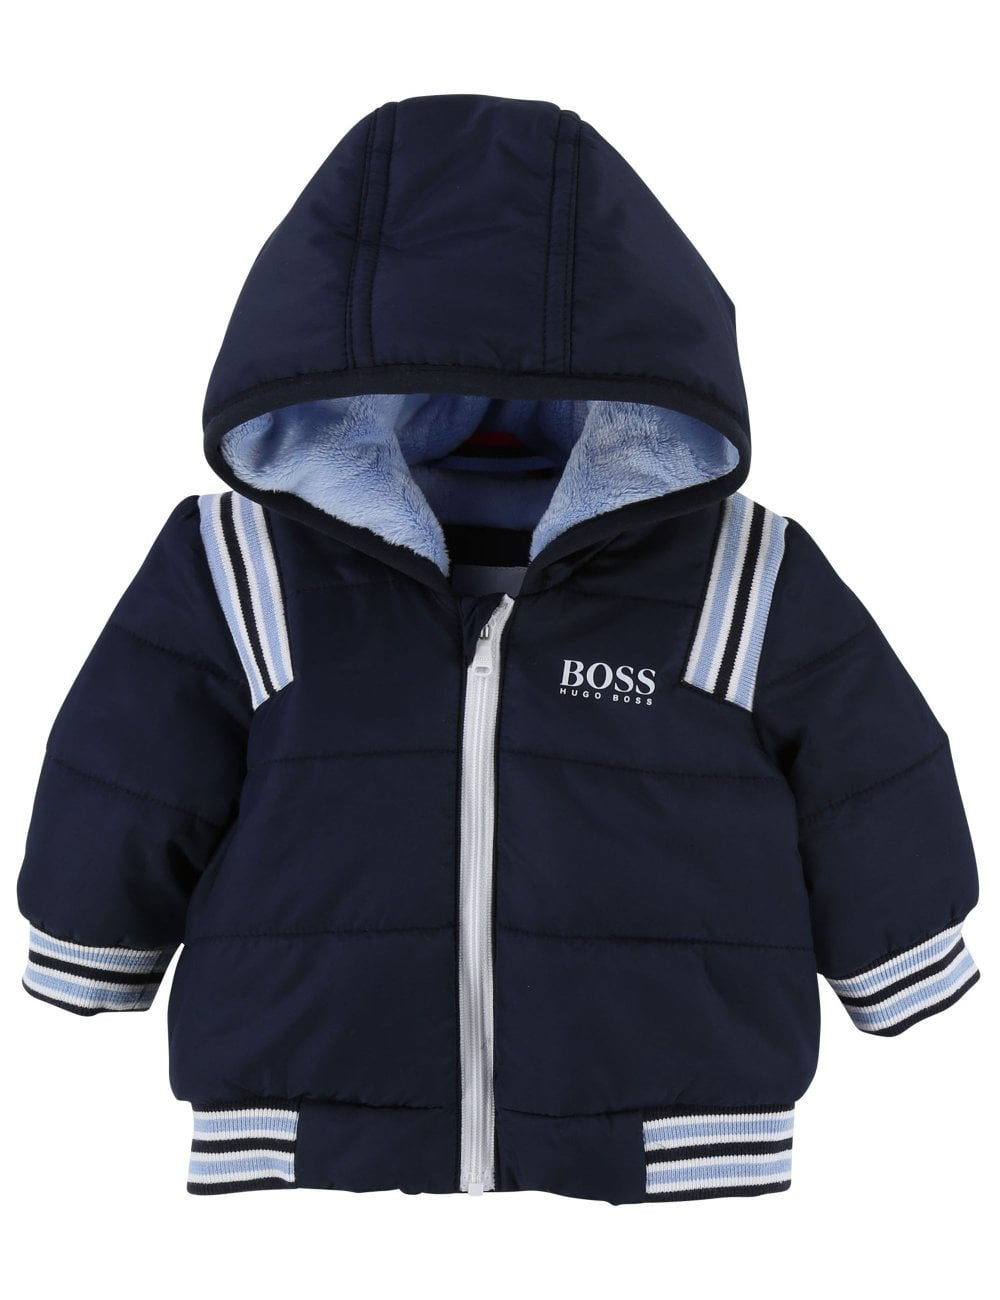 Hugo Boss Kids Baby Boys Puffer Jacket 25c229dc9